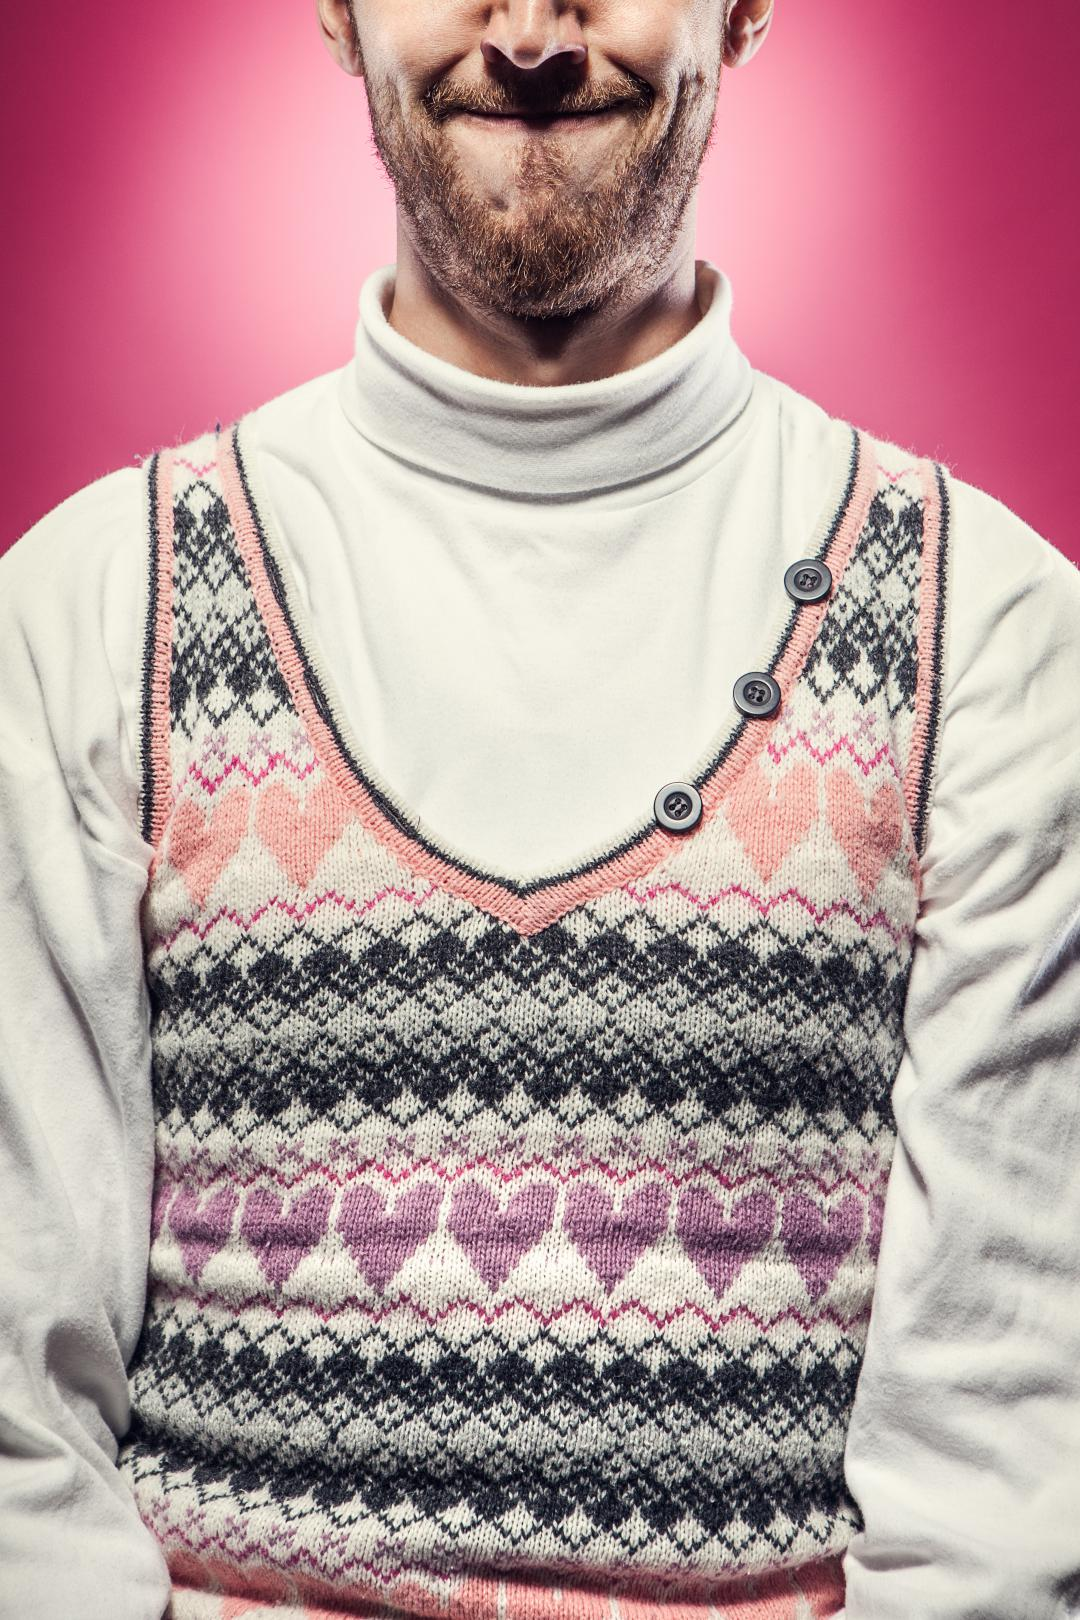 A man in a white turtleneck wears a wool sweater for Valentines day covered with knitted hearts. Vibrant pink background; studio shot.